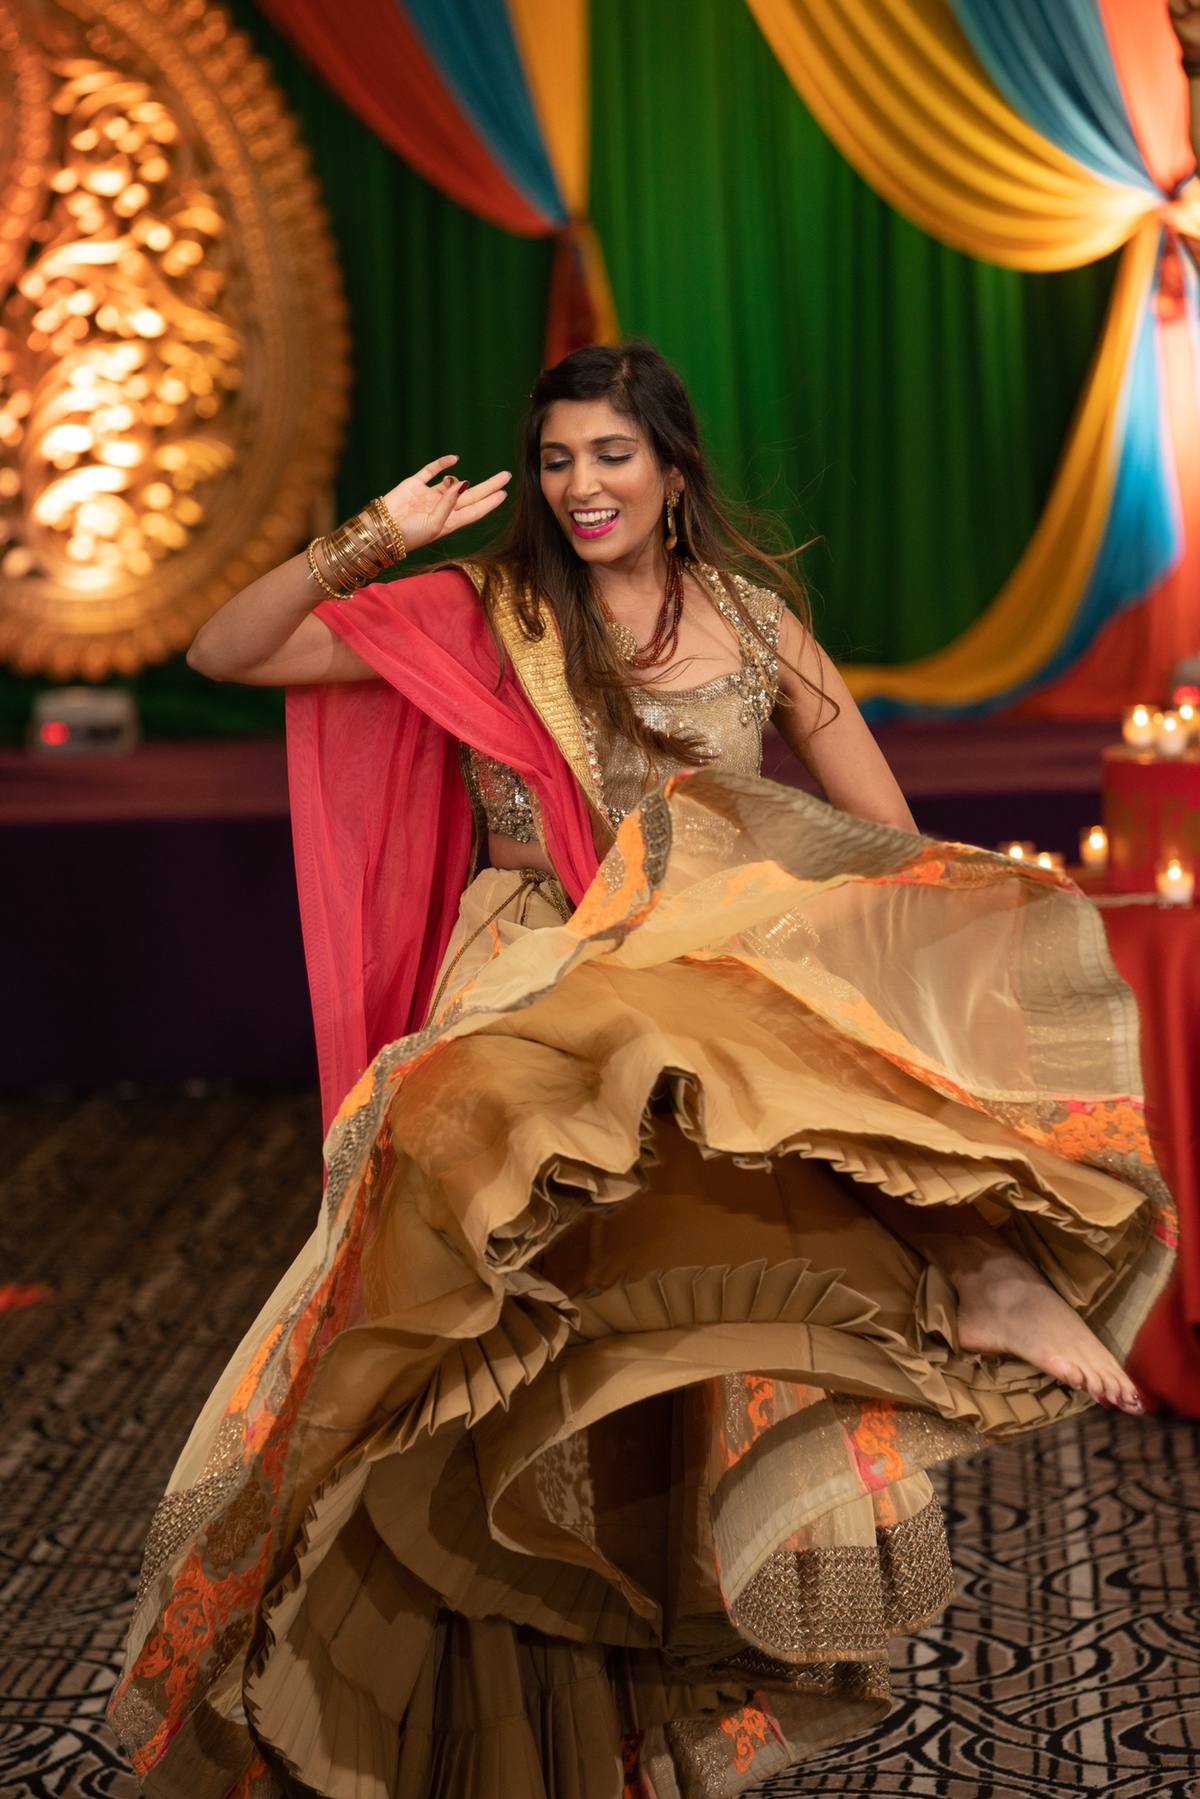 Le Cape Weddings - South Asian Wedding - Chicago Wedding Photographer P&V-2.jpg